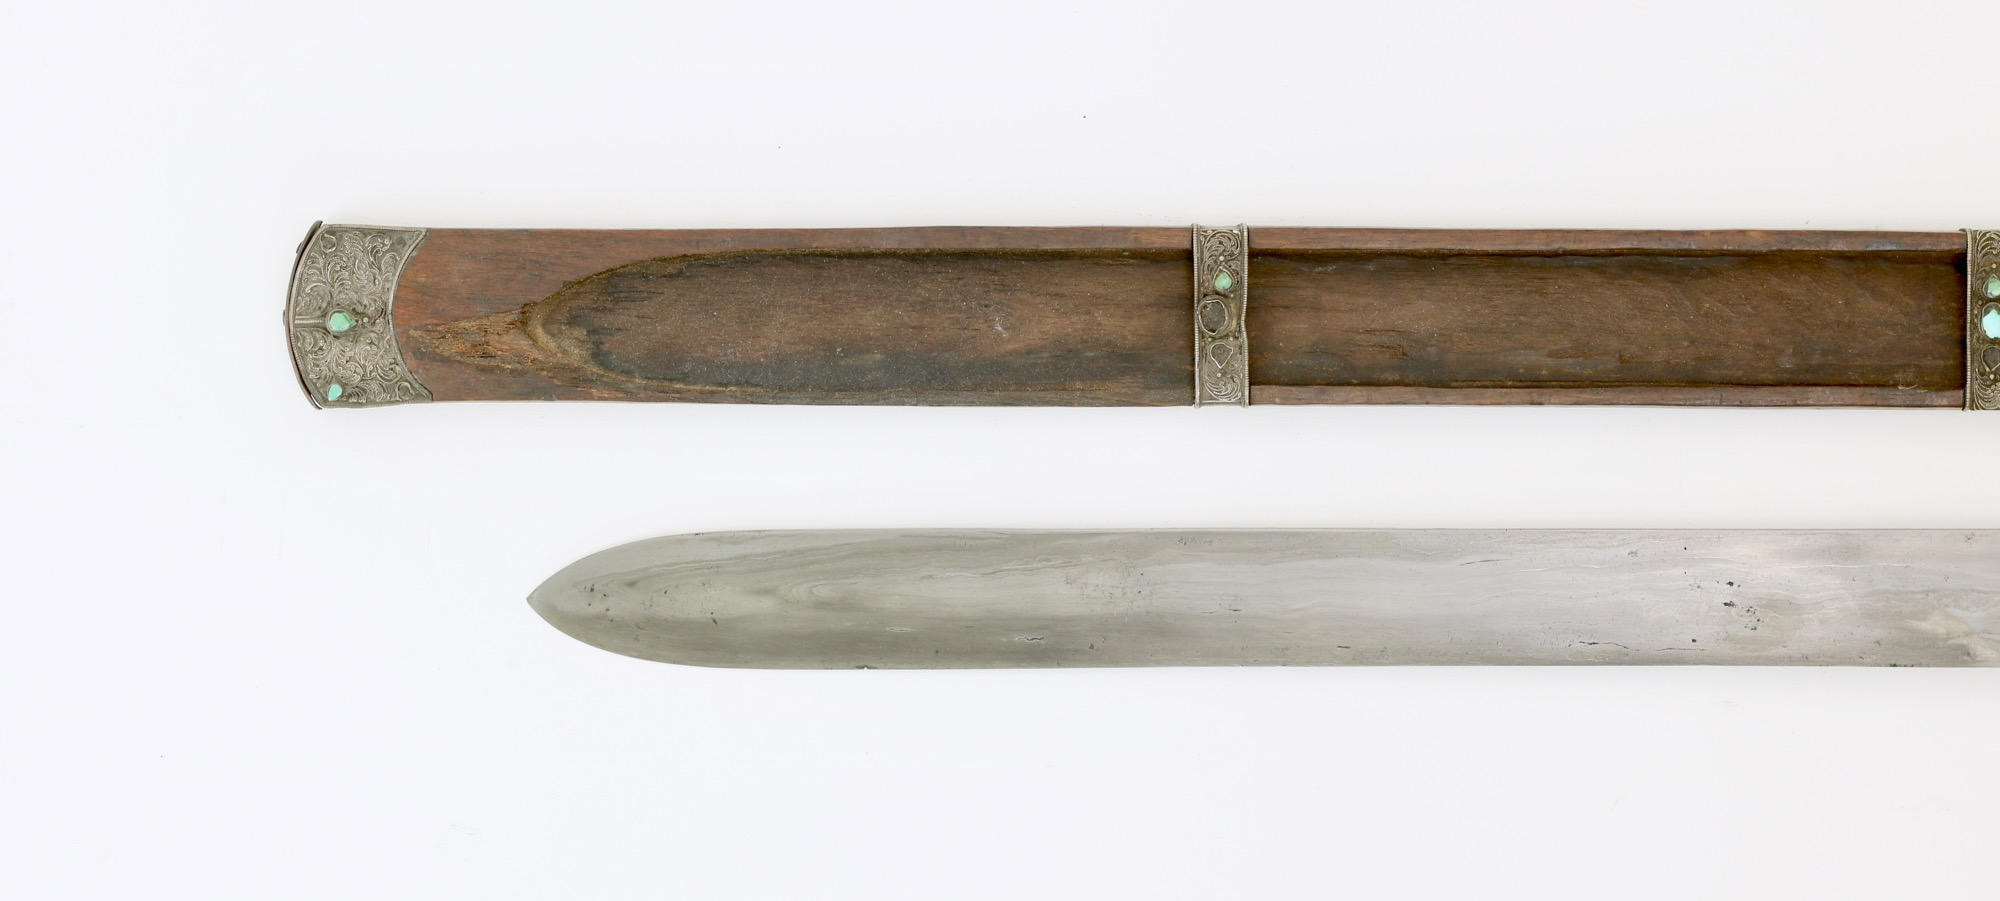 Antique sword from the Himalayan Kingdom of Sikkim.